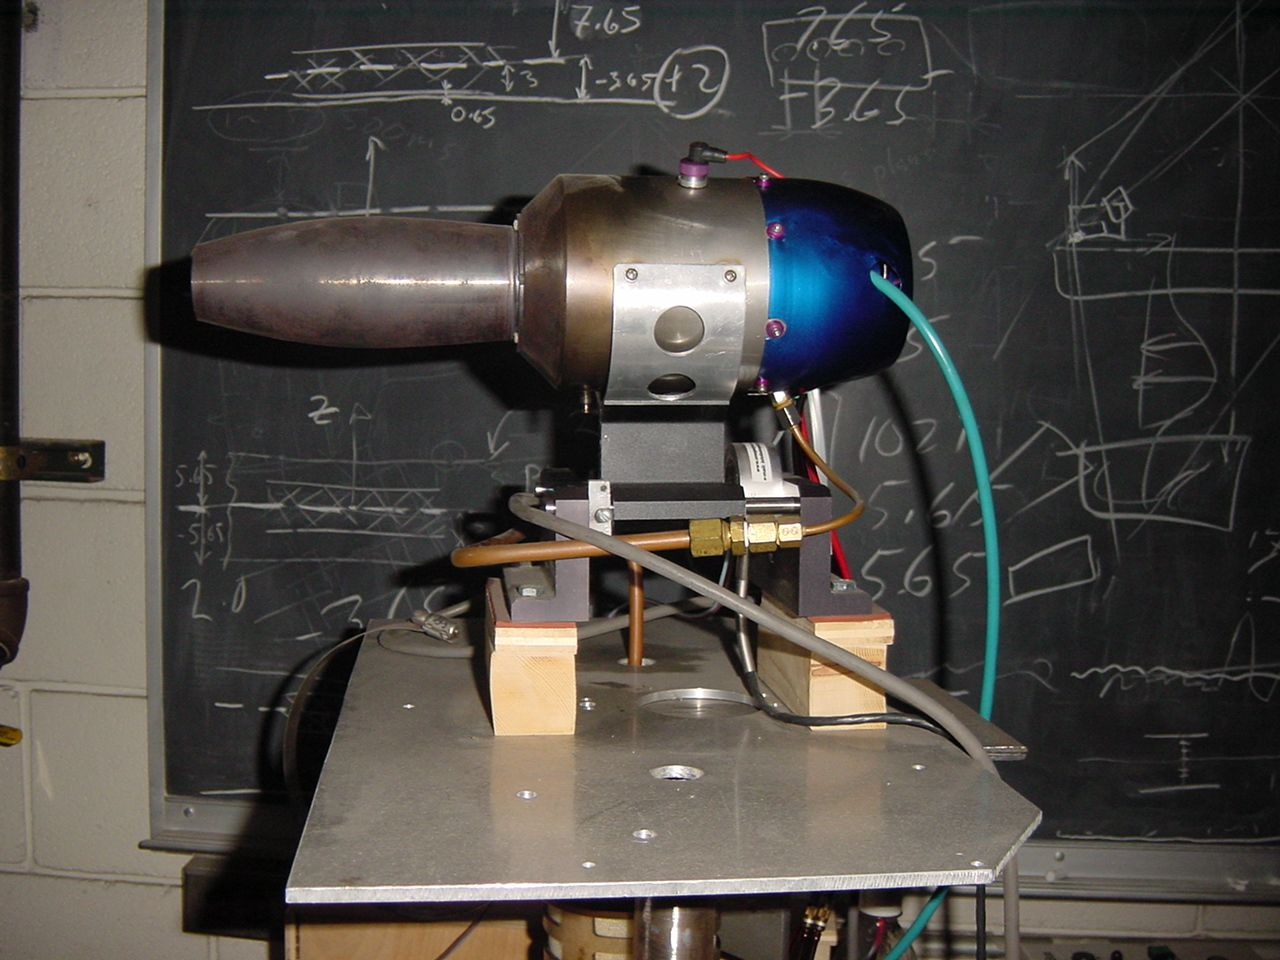 20 lbs thrust fully operational turbo-jet engine for student